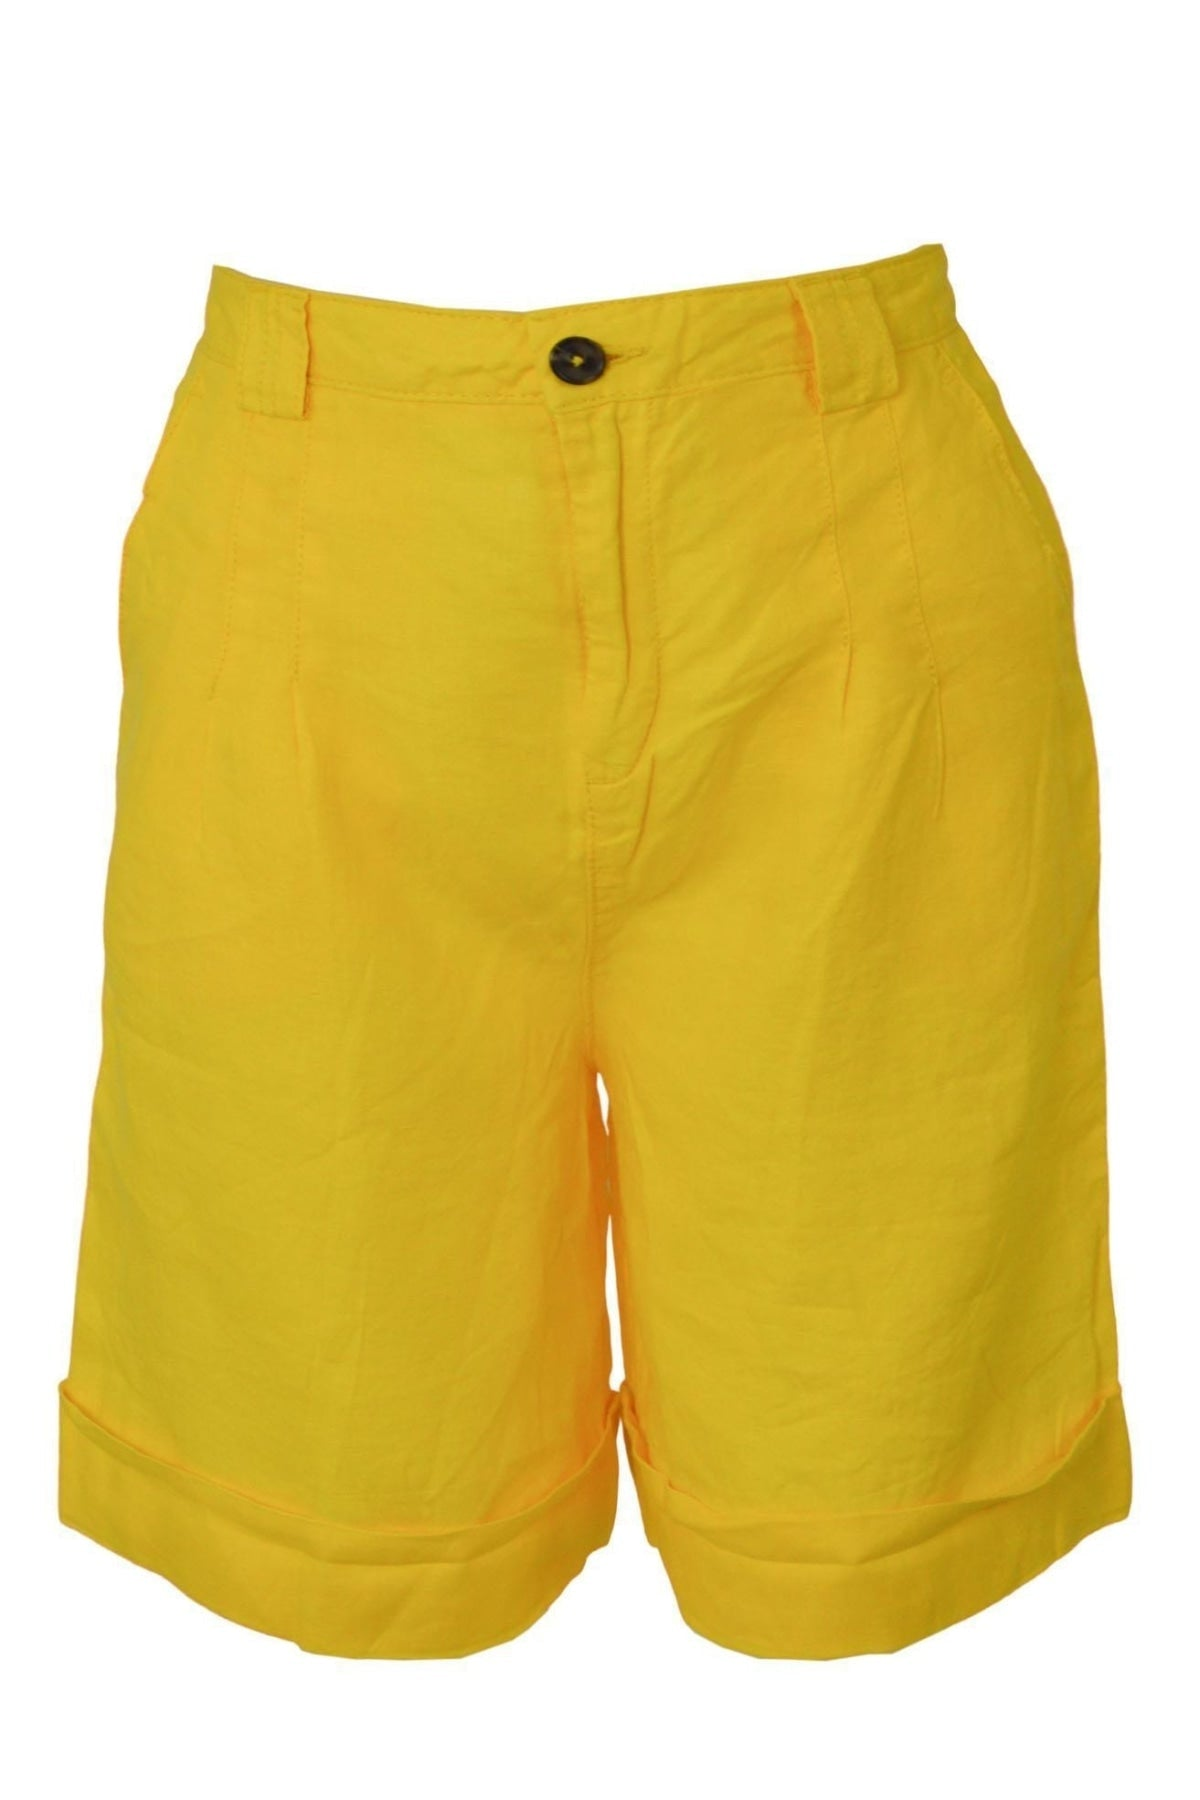 United Colors Of Benetton United Colors Of Benetton Cotton Bermuda Shorts | Secret Label